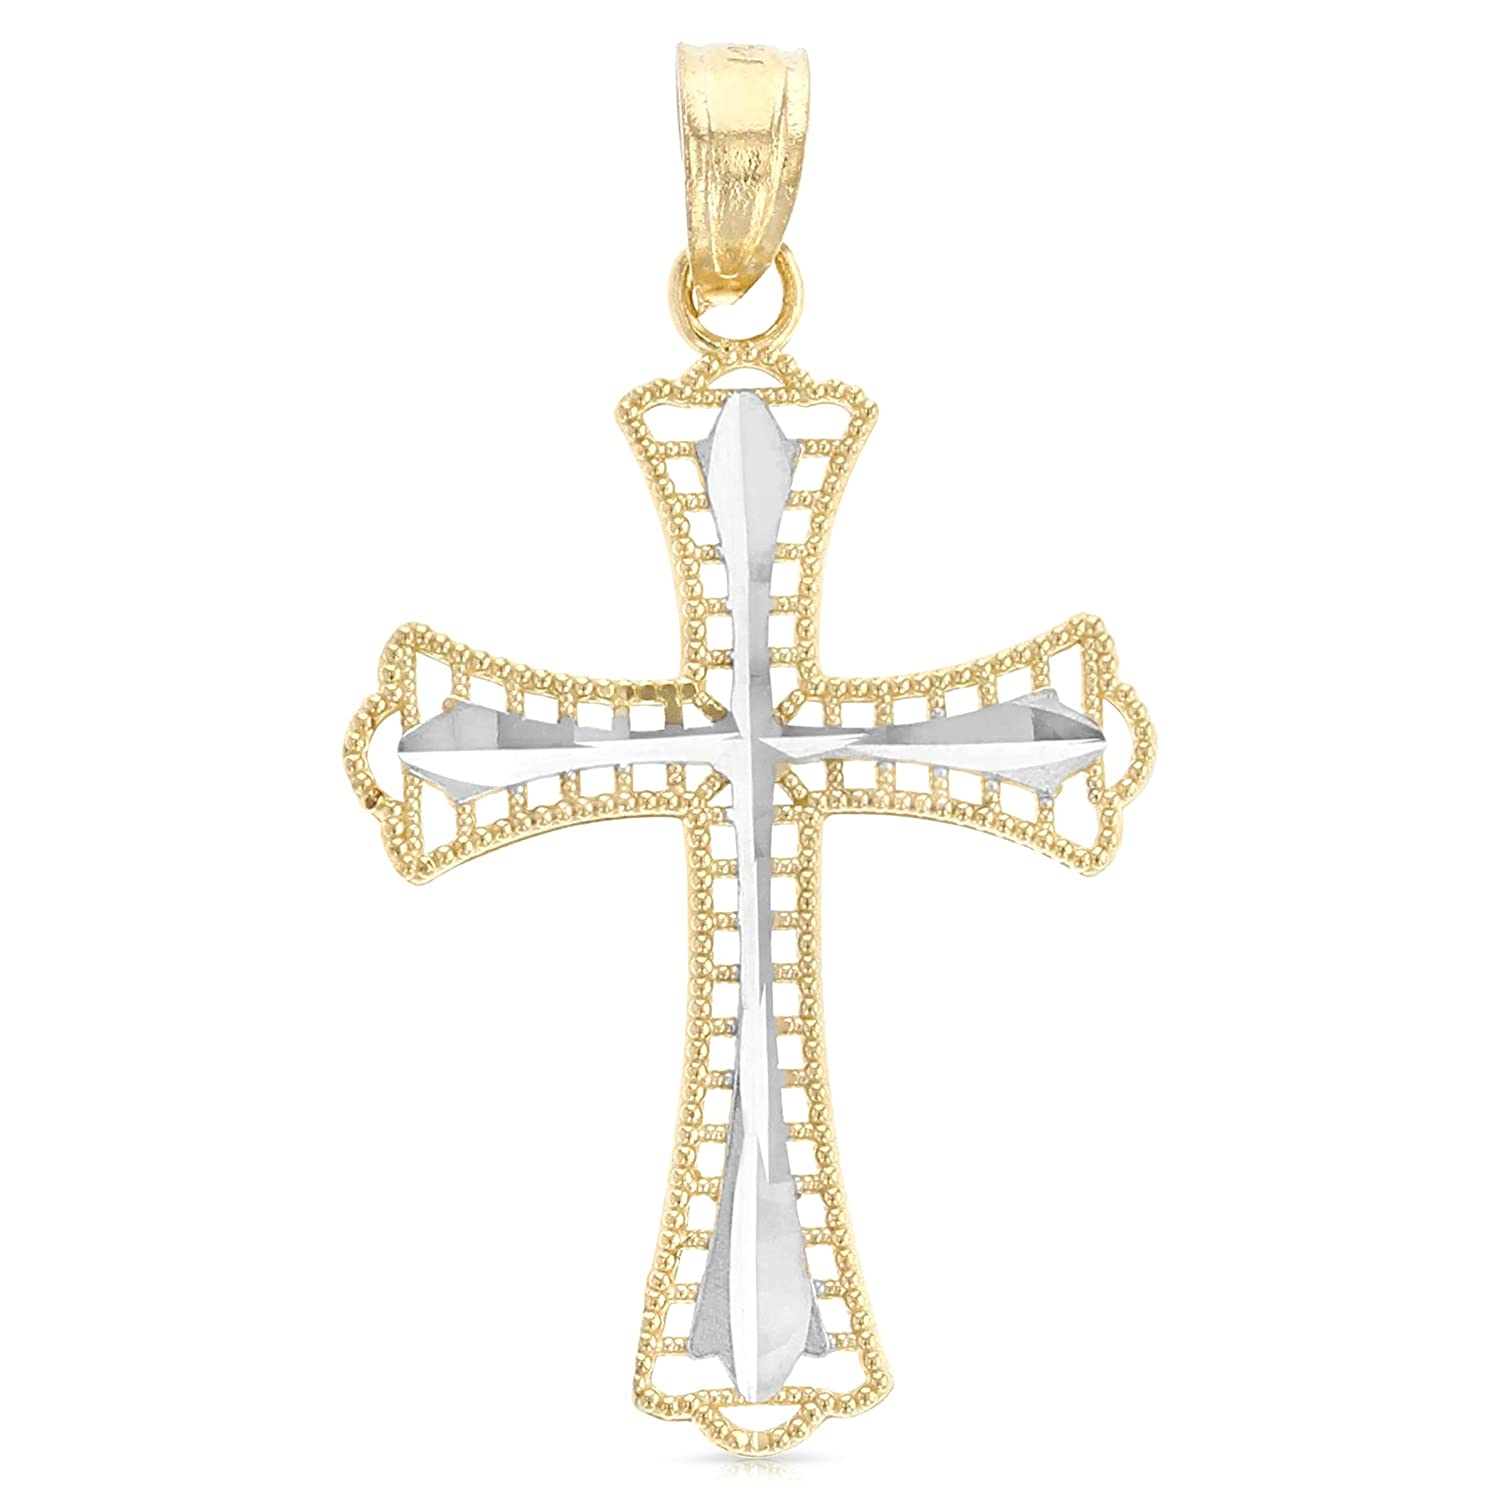 14K Two Tone Gold Religious Cross Charm Pendant with 0.8mm Box Chain Necklace